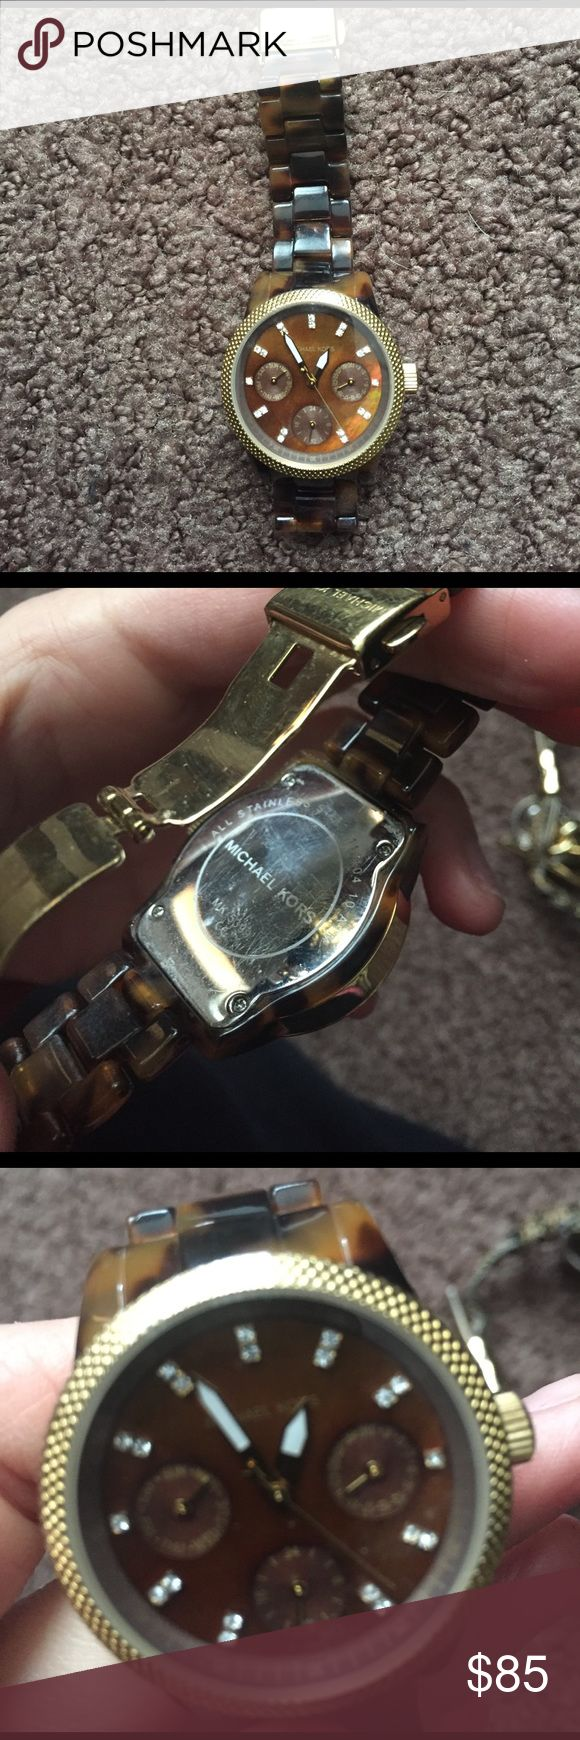 Michael Kors tortoise shell watch Beautiful tortoise shell watch. Has been worn for a few years but still in great condition. Battery replaced about one year ago Michael Kors Accessories Watches